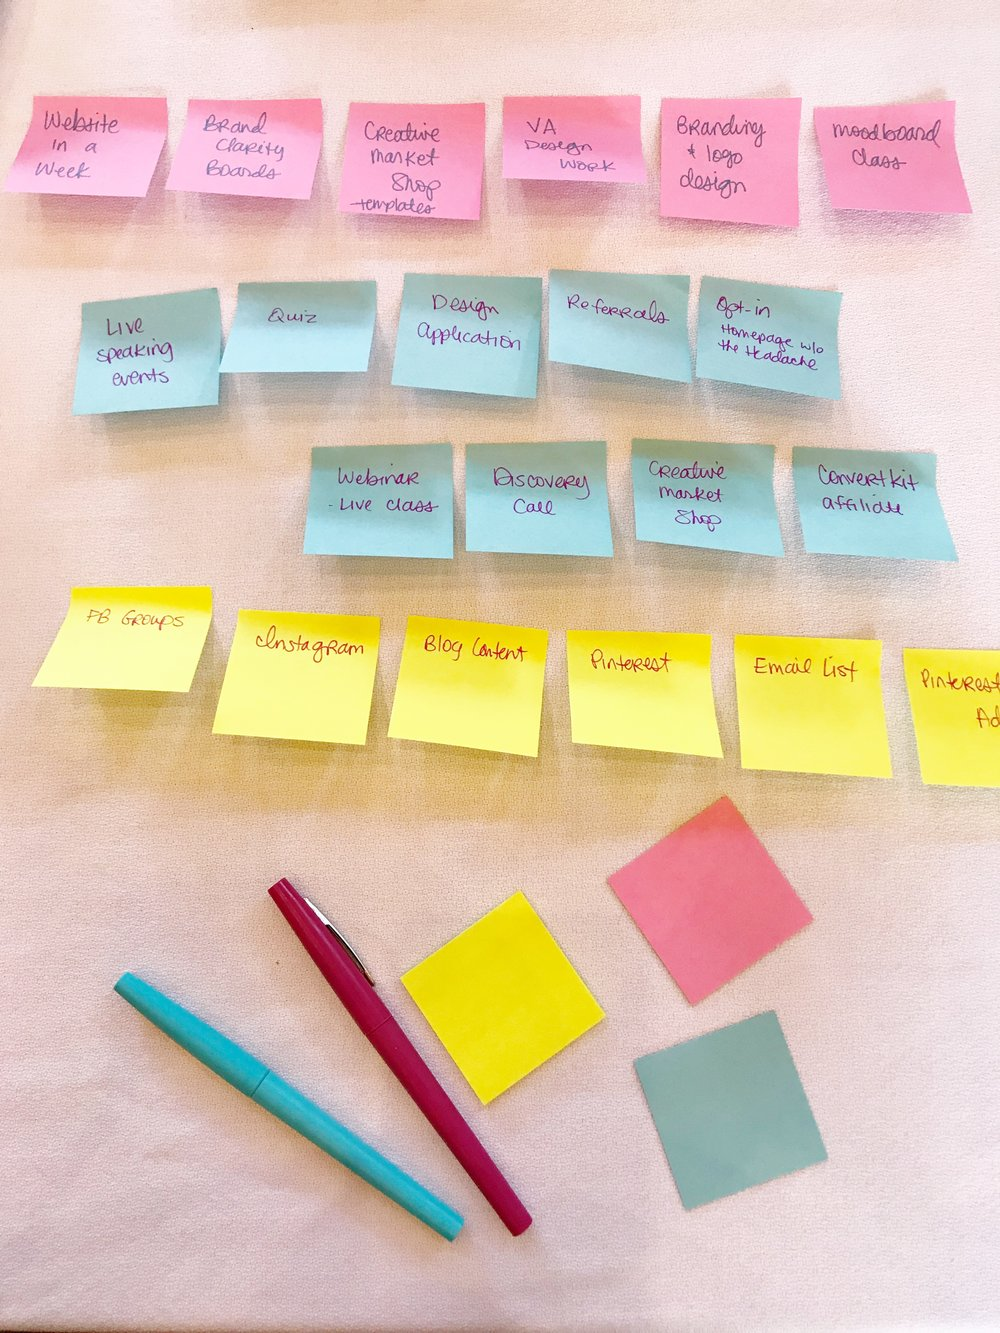 The Profit Planner Retreat - Post-It Note Method